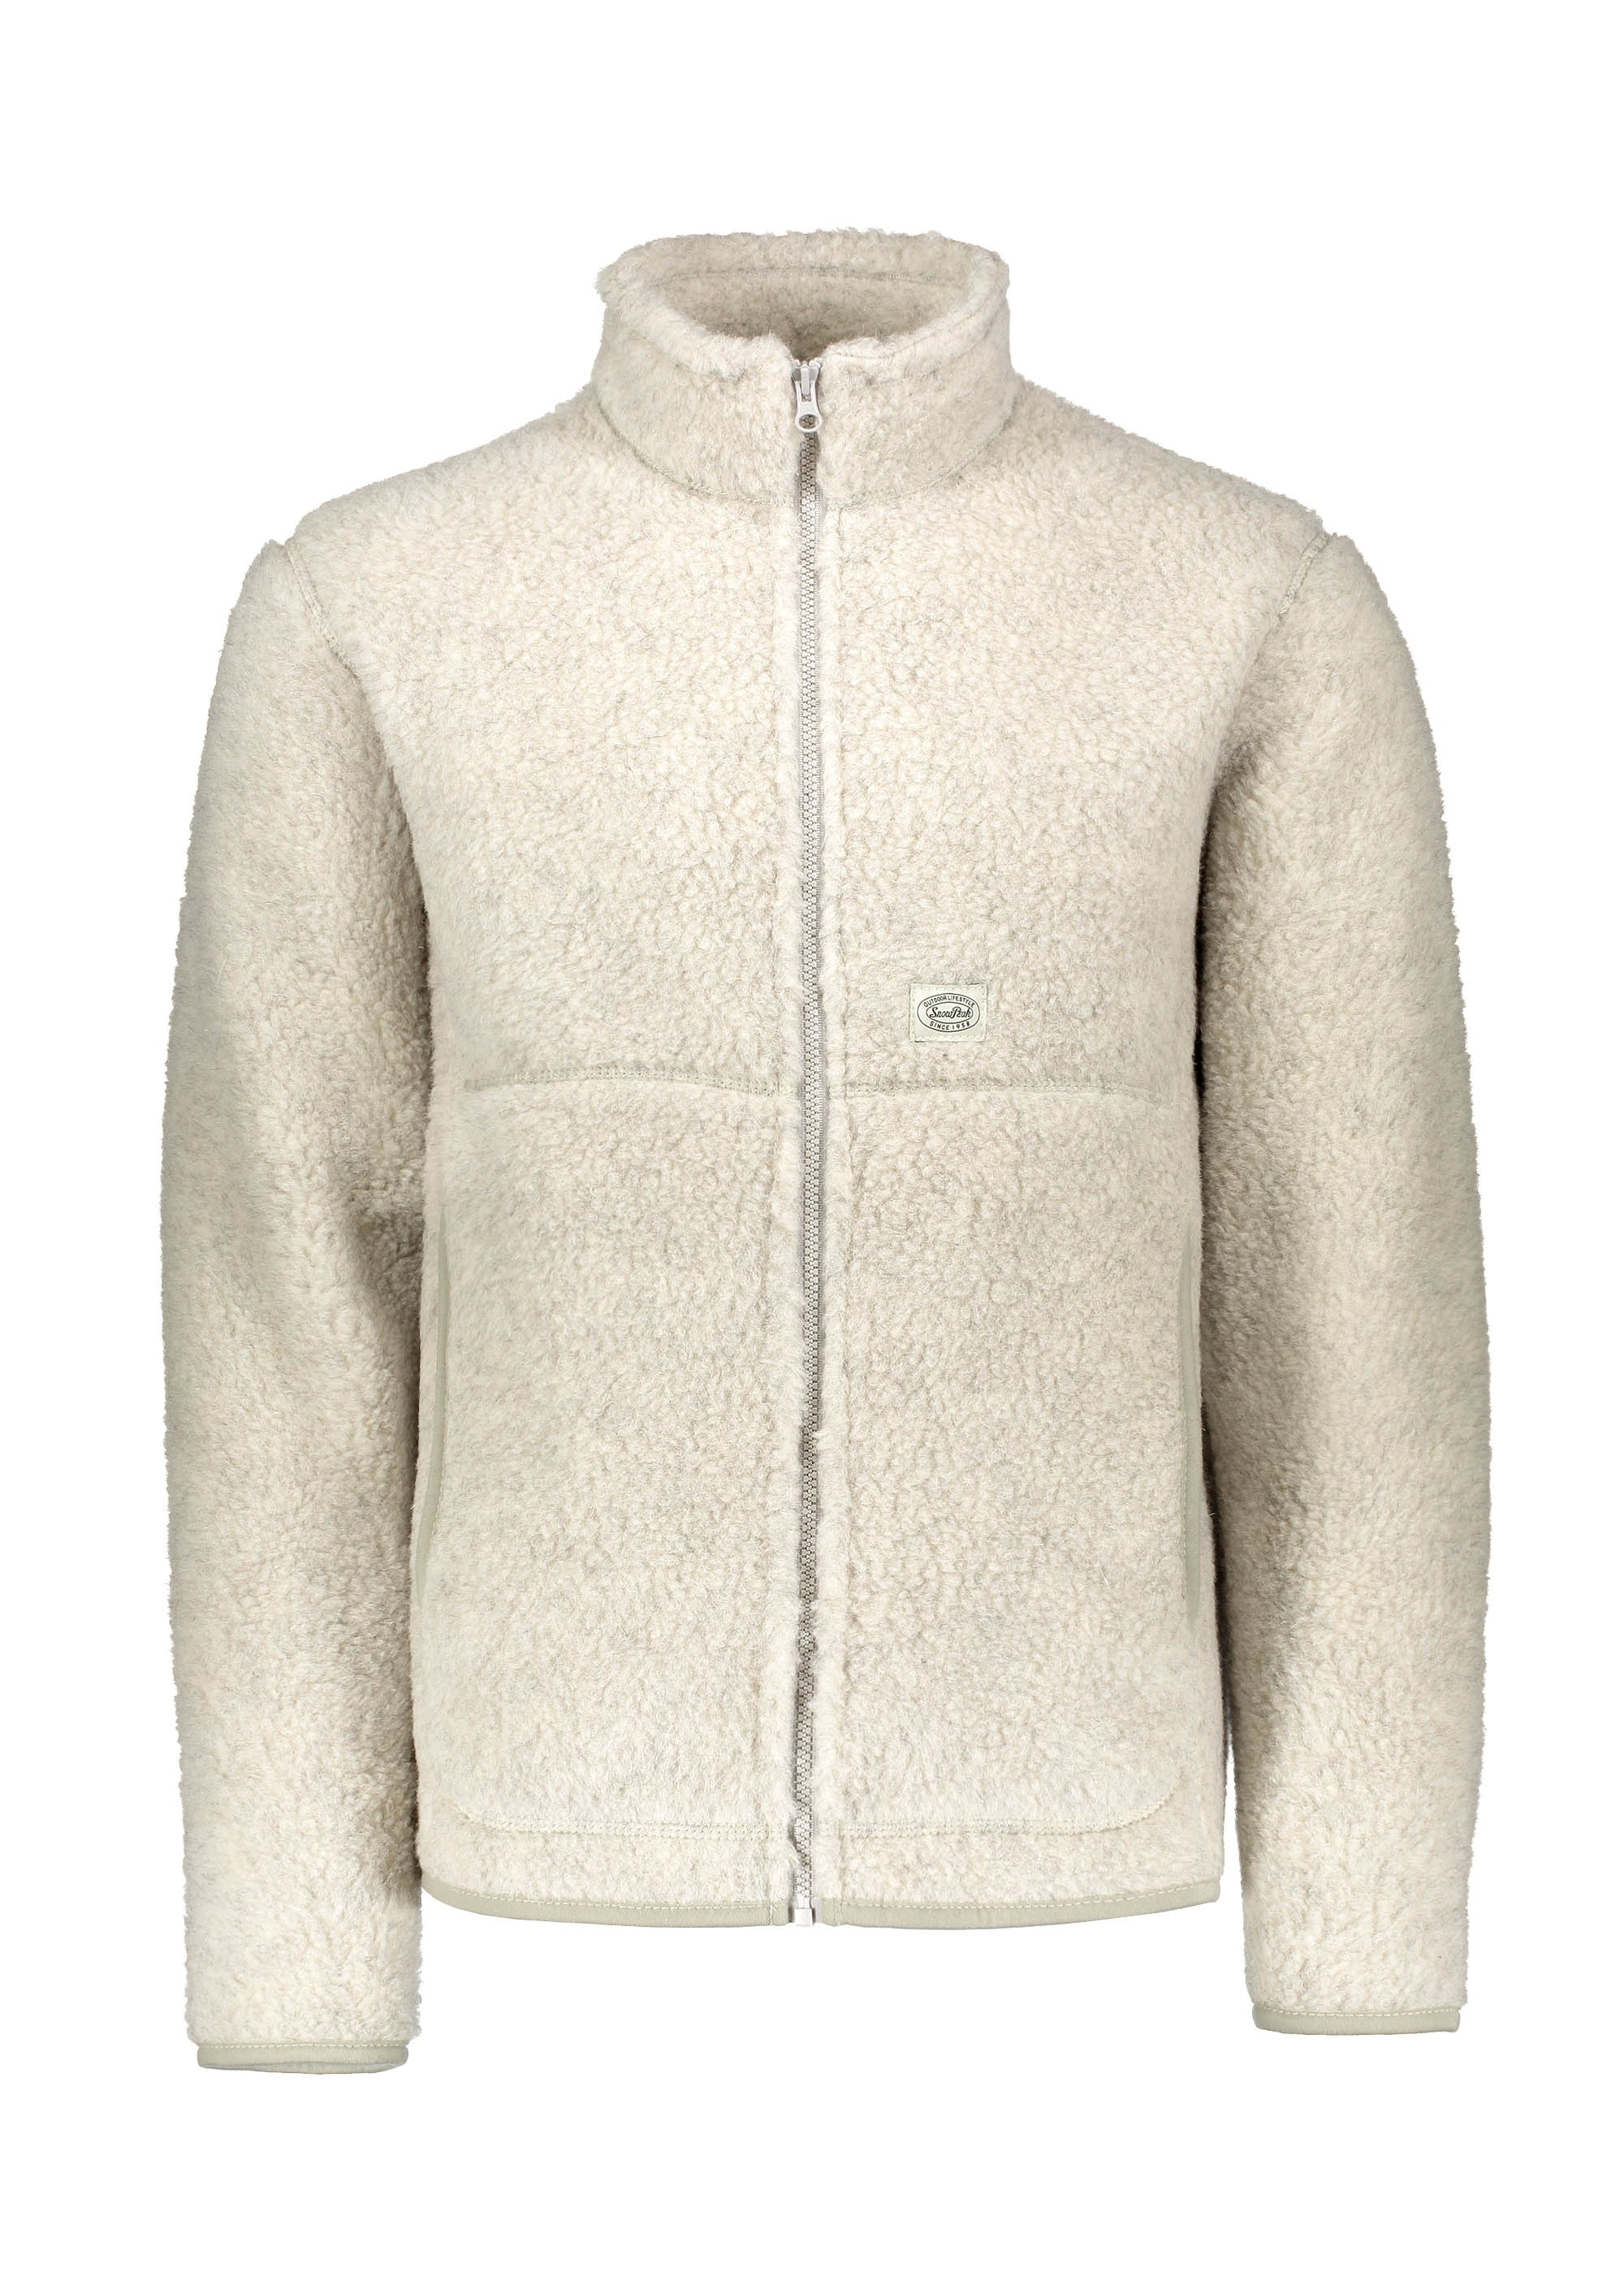 dfda99387 Snow Peak Wool Fleece Jacket - White